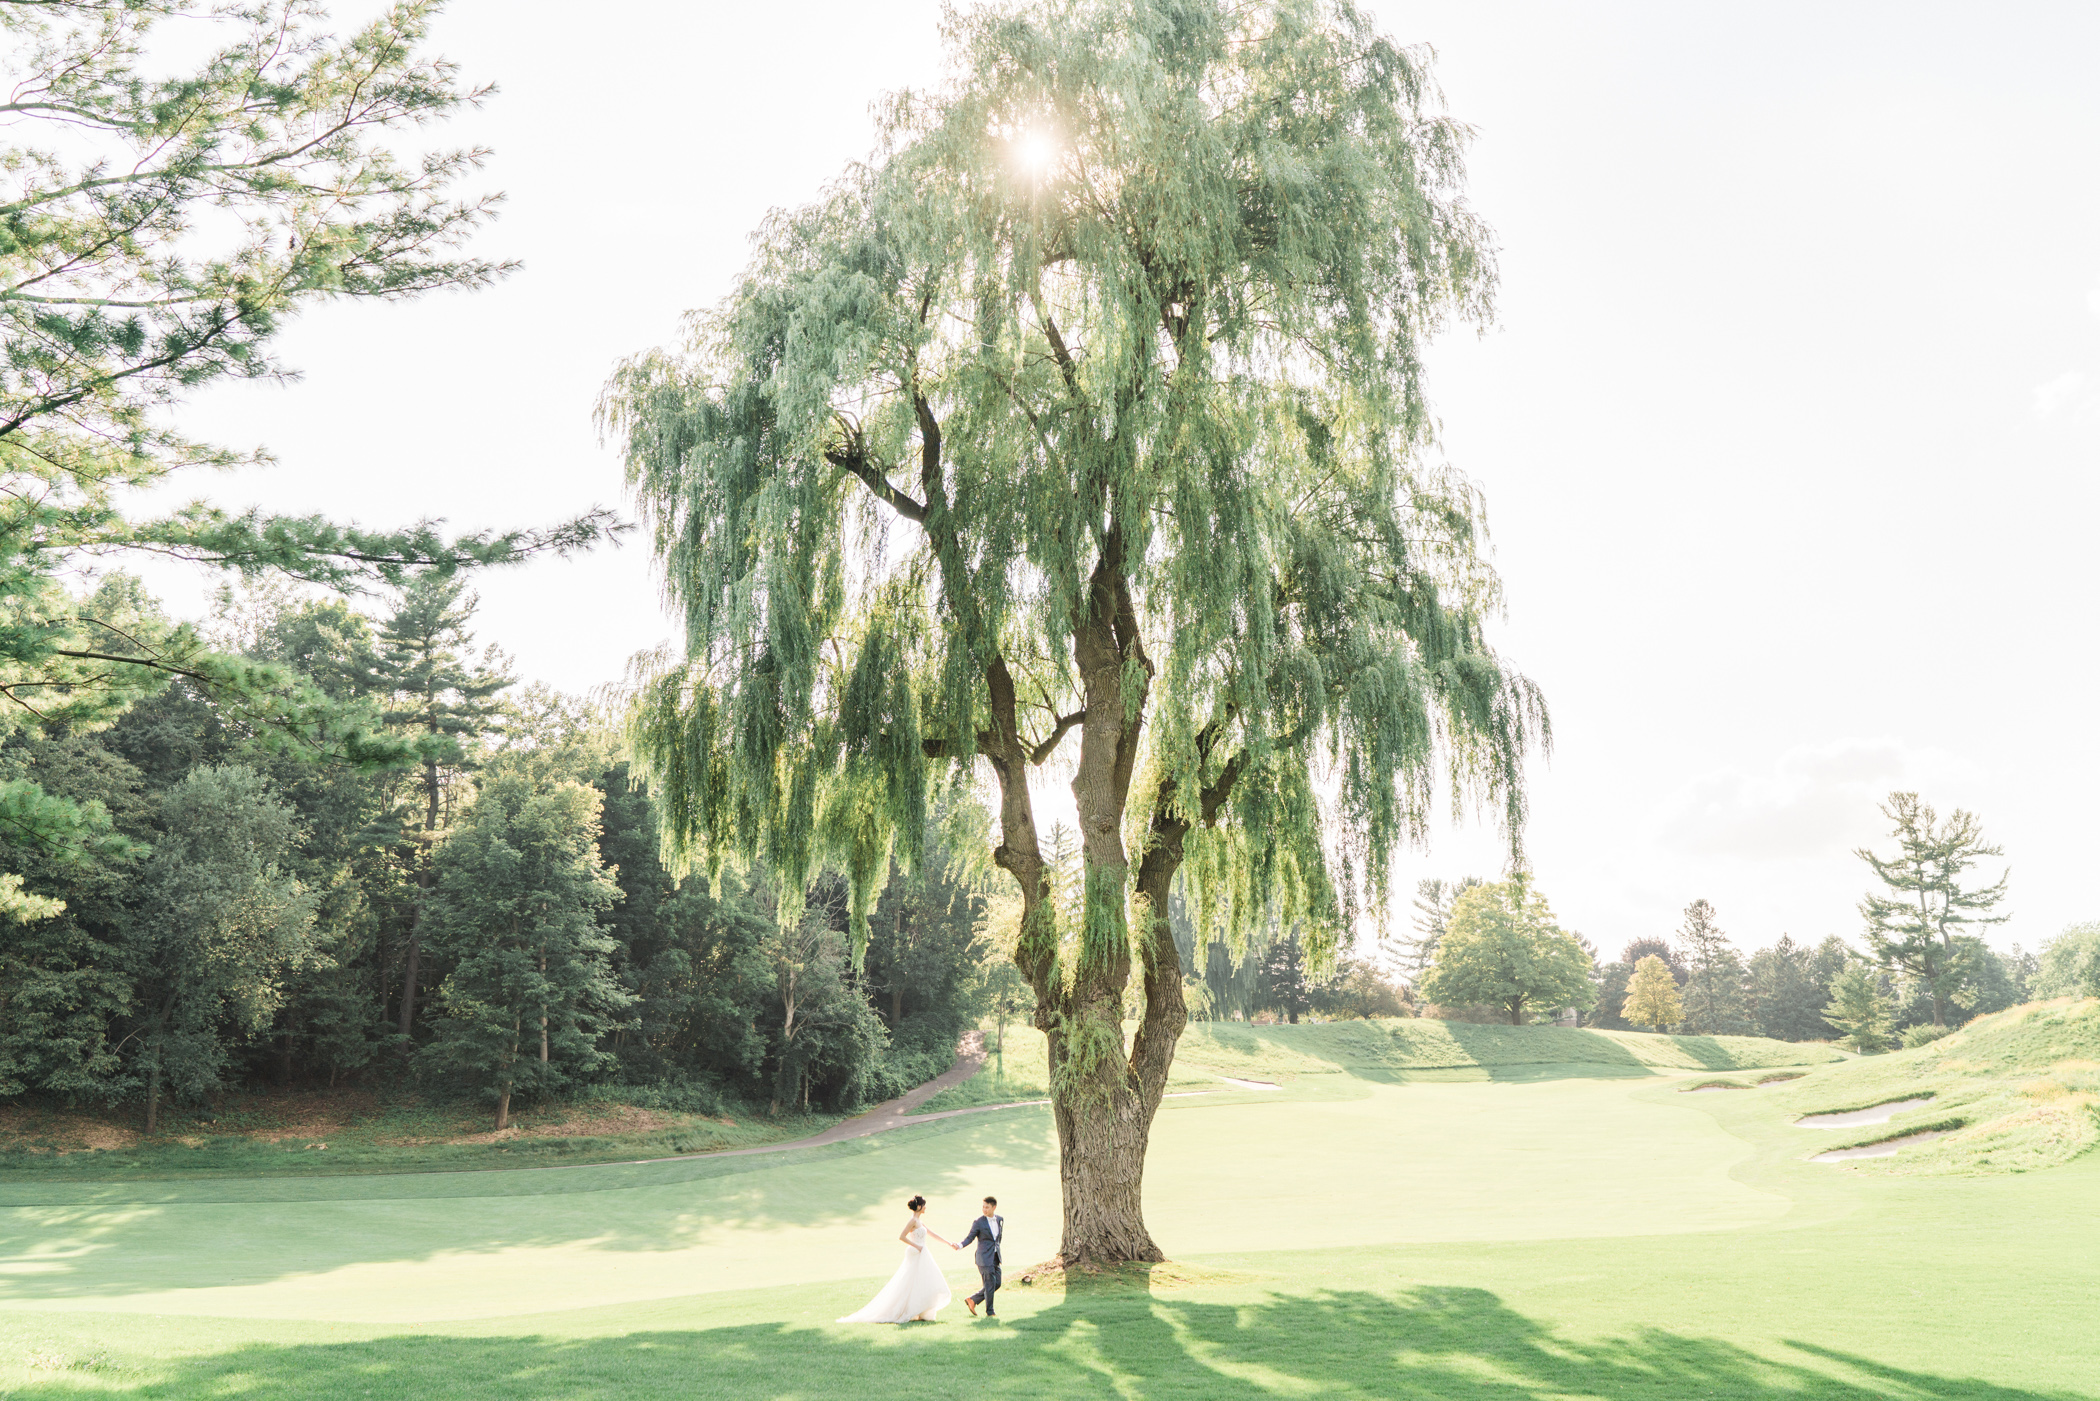 Toronto_Bayview_Golf_and_Country_Club_Wedding_Photos_California_Arizona_HongKong-Rhythm_Photography-Rhythm_Photography-051.jpg